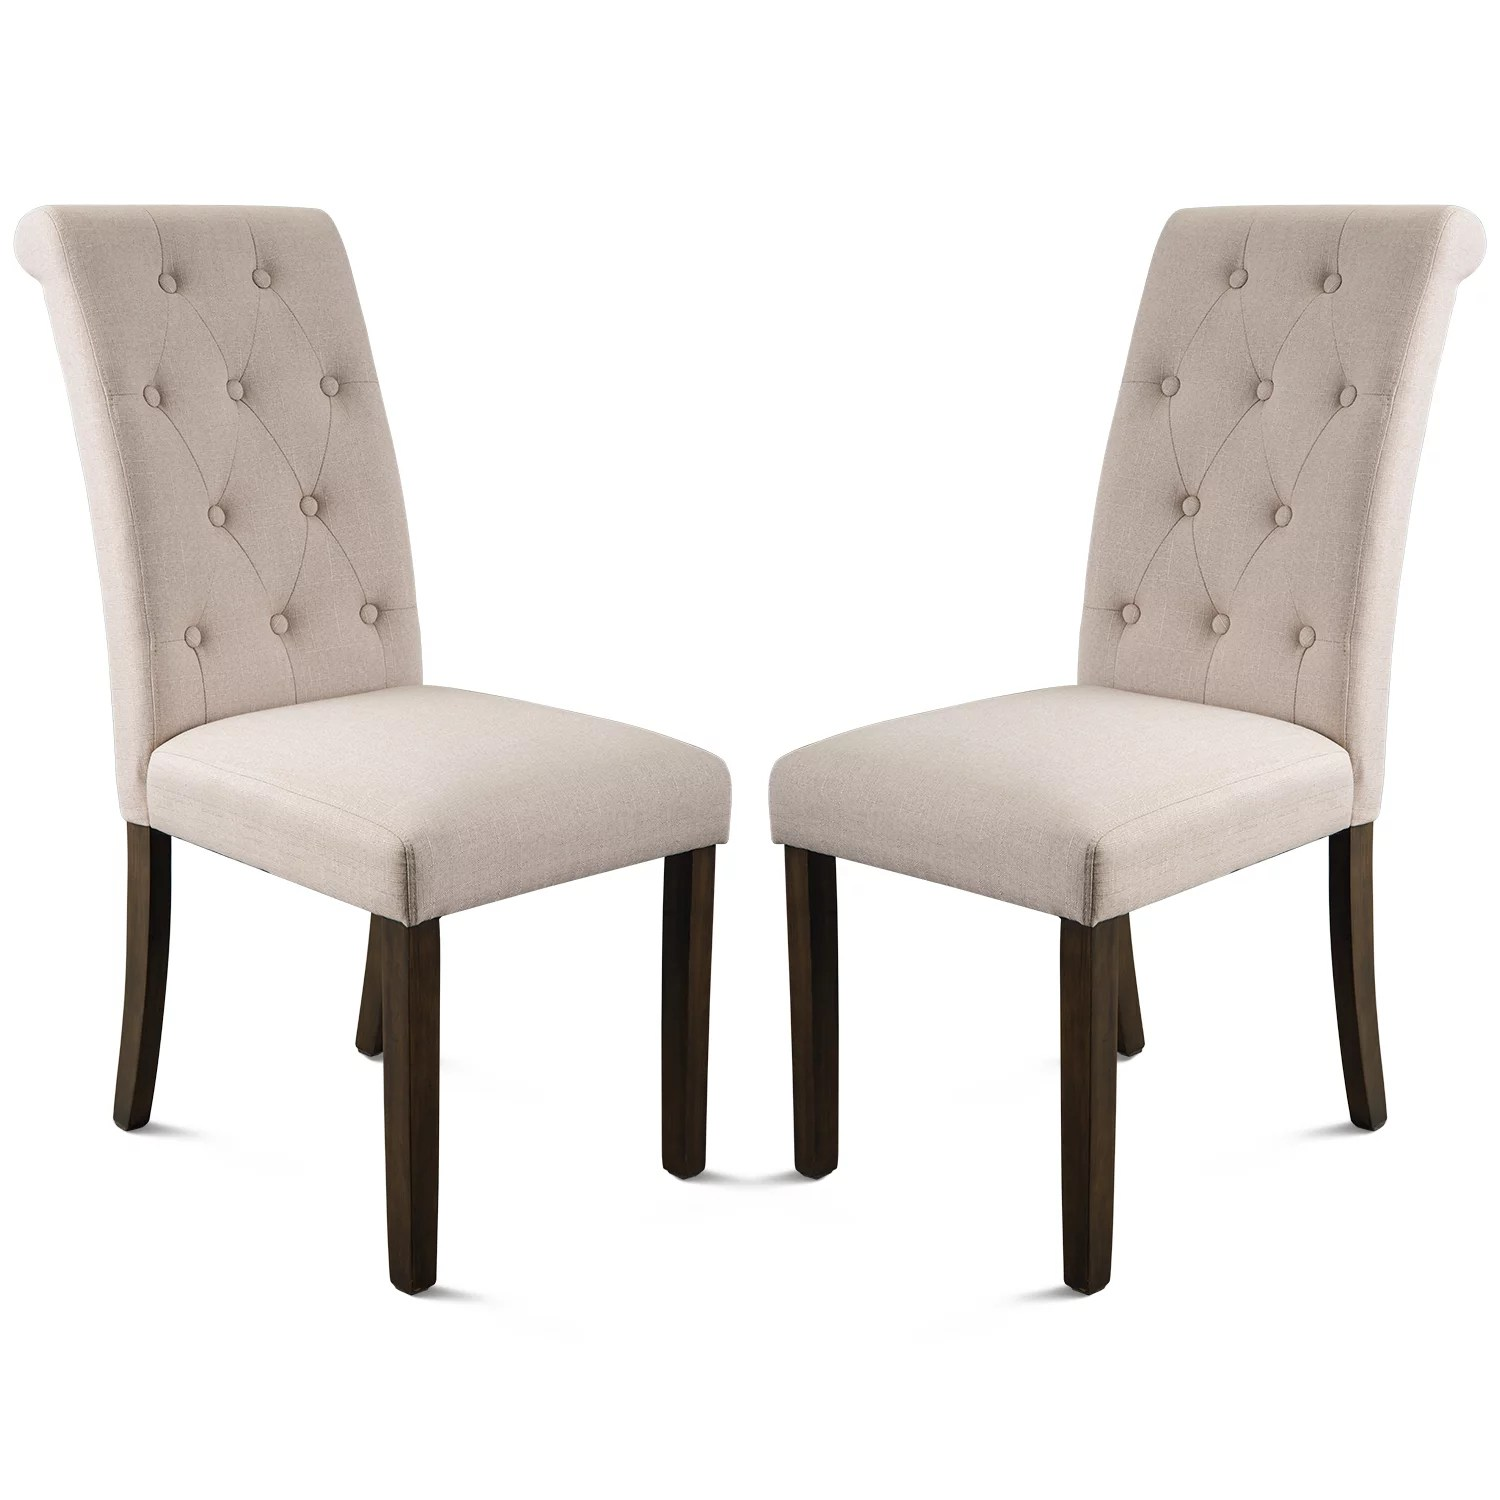 Parsons Tufted Dining Chairs Urhomepro Set Of 2 Upholstered High